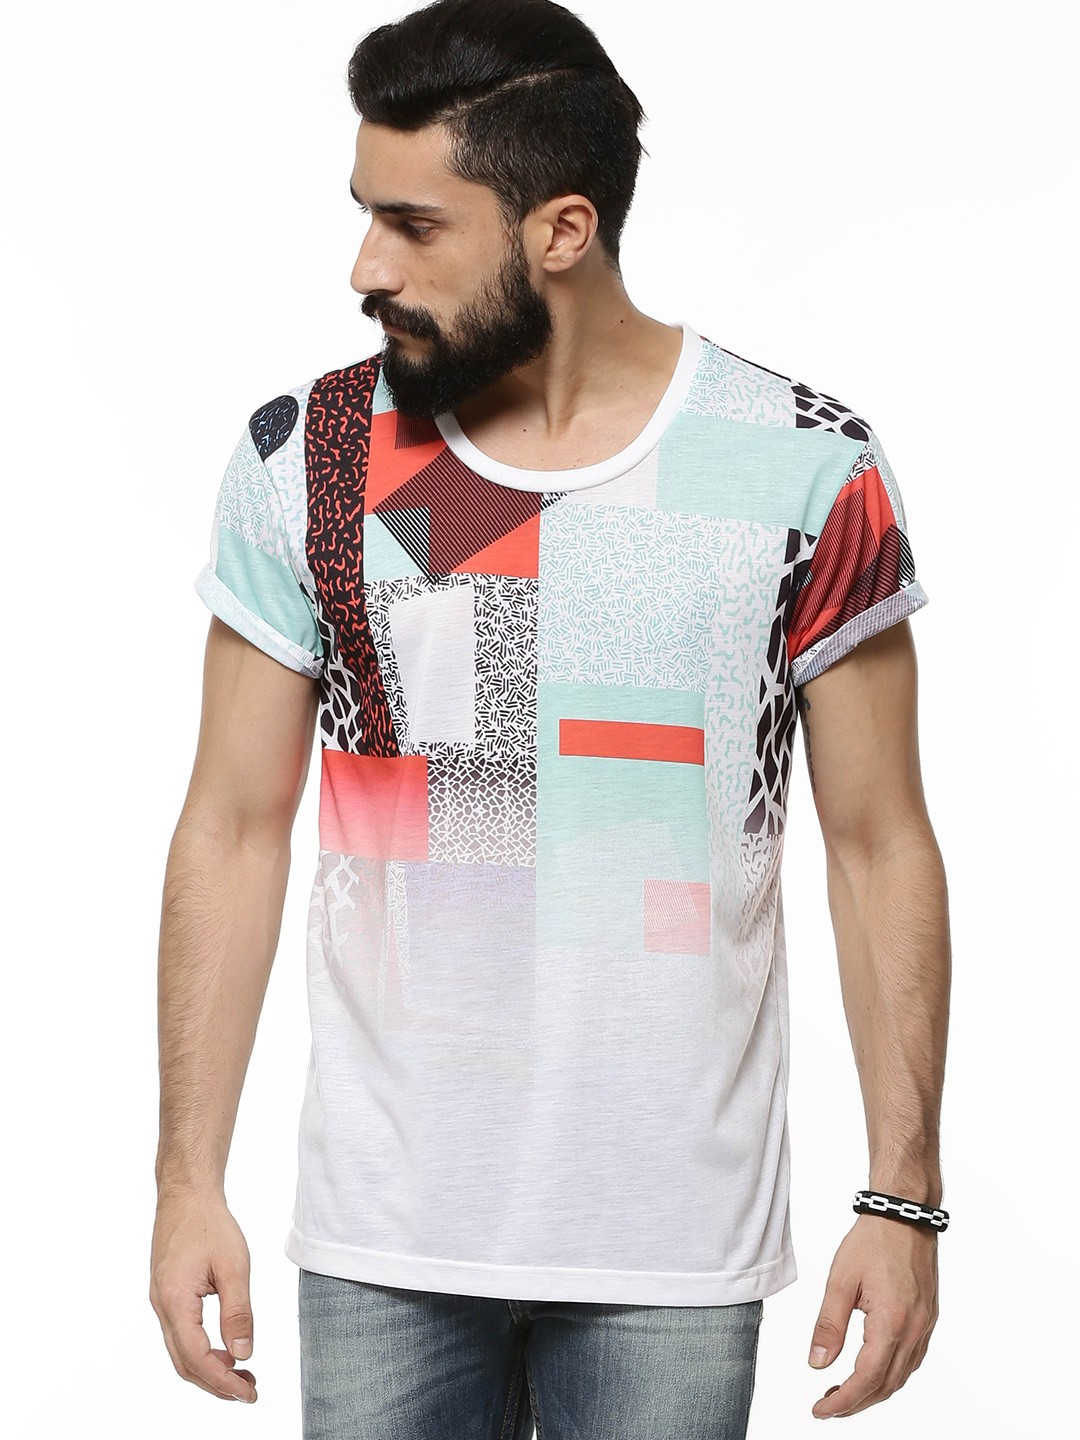 b3a94ed8a278 Printed T Shirts Online India